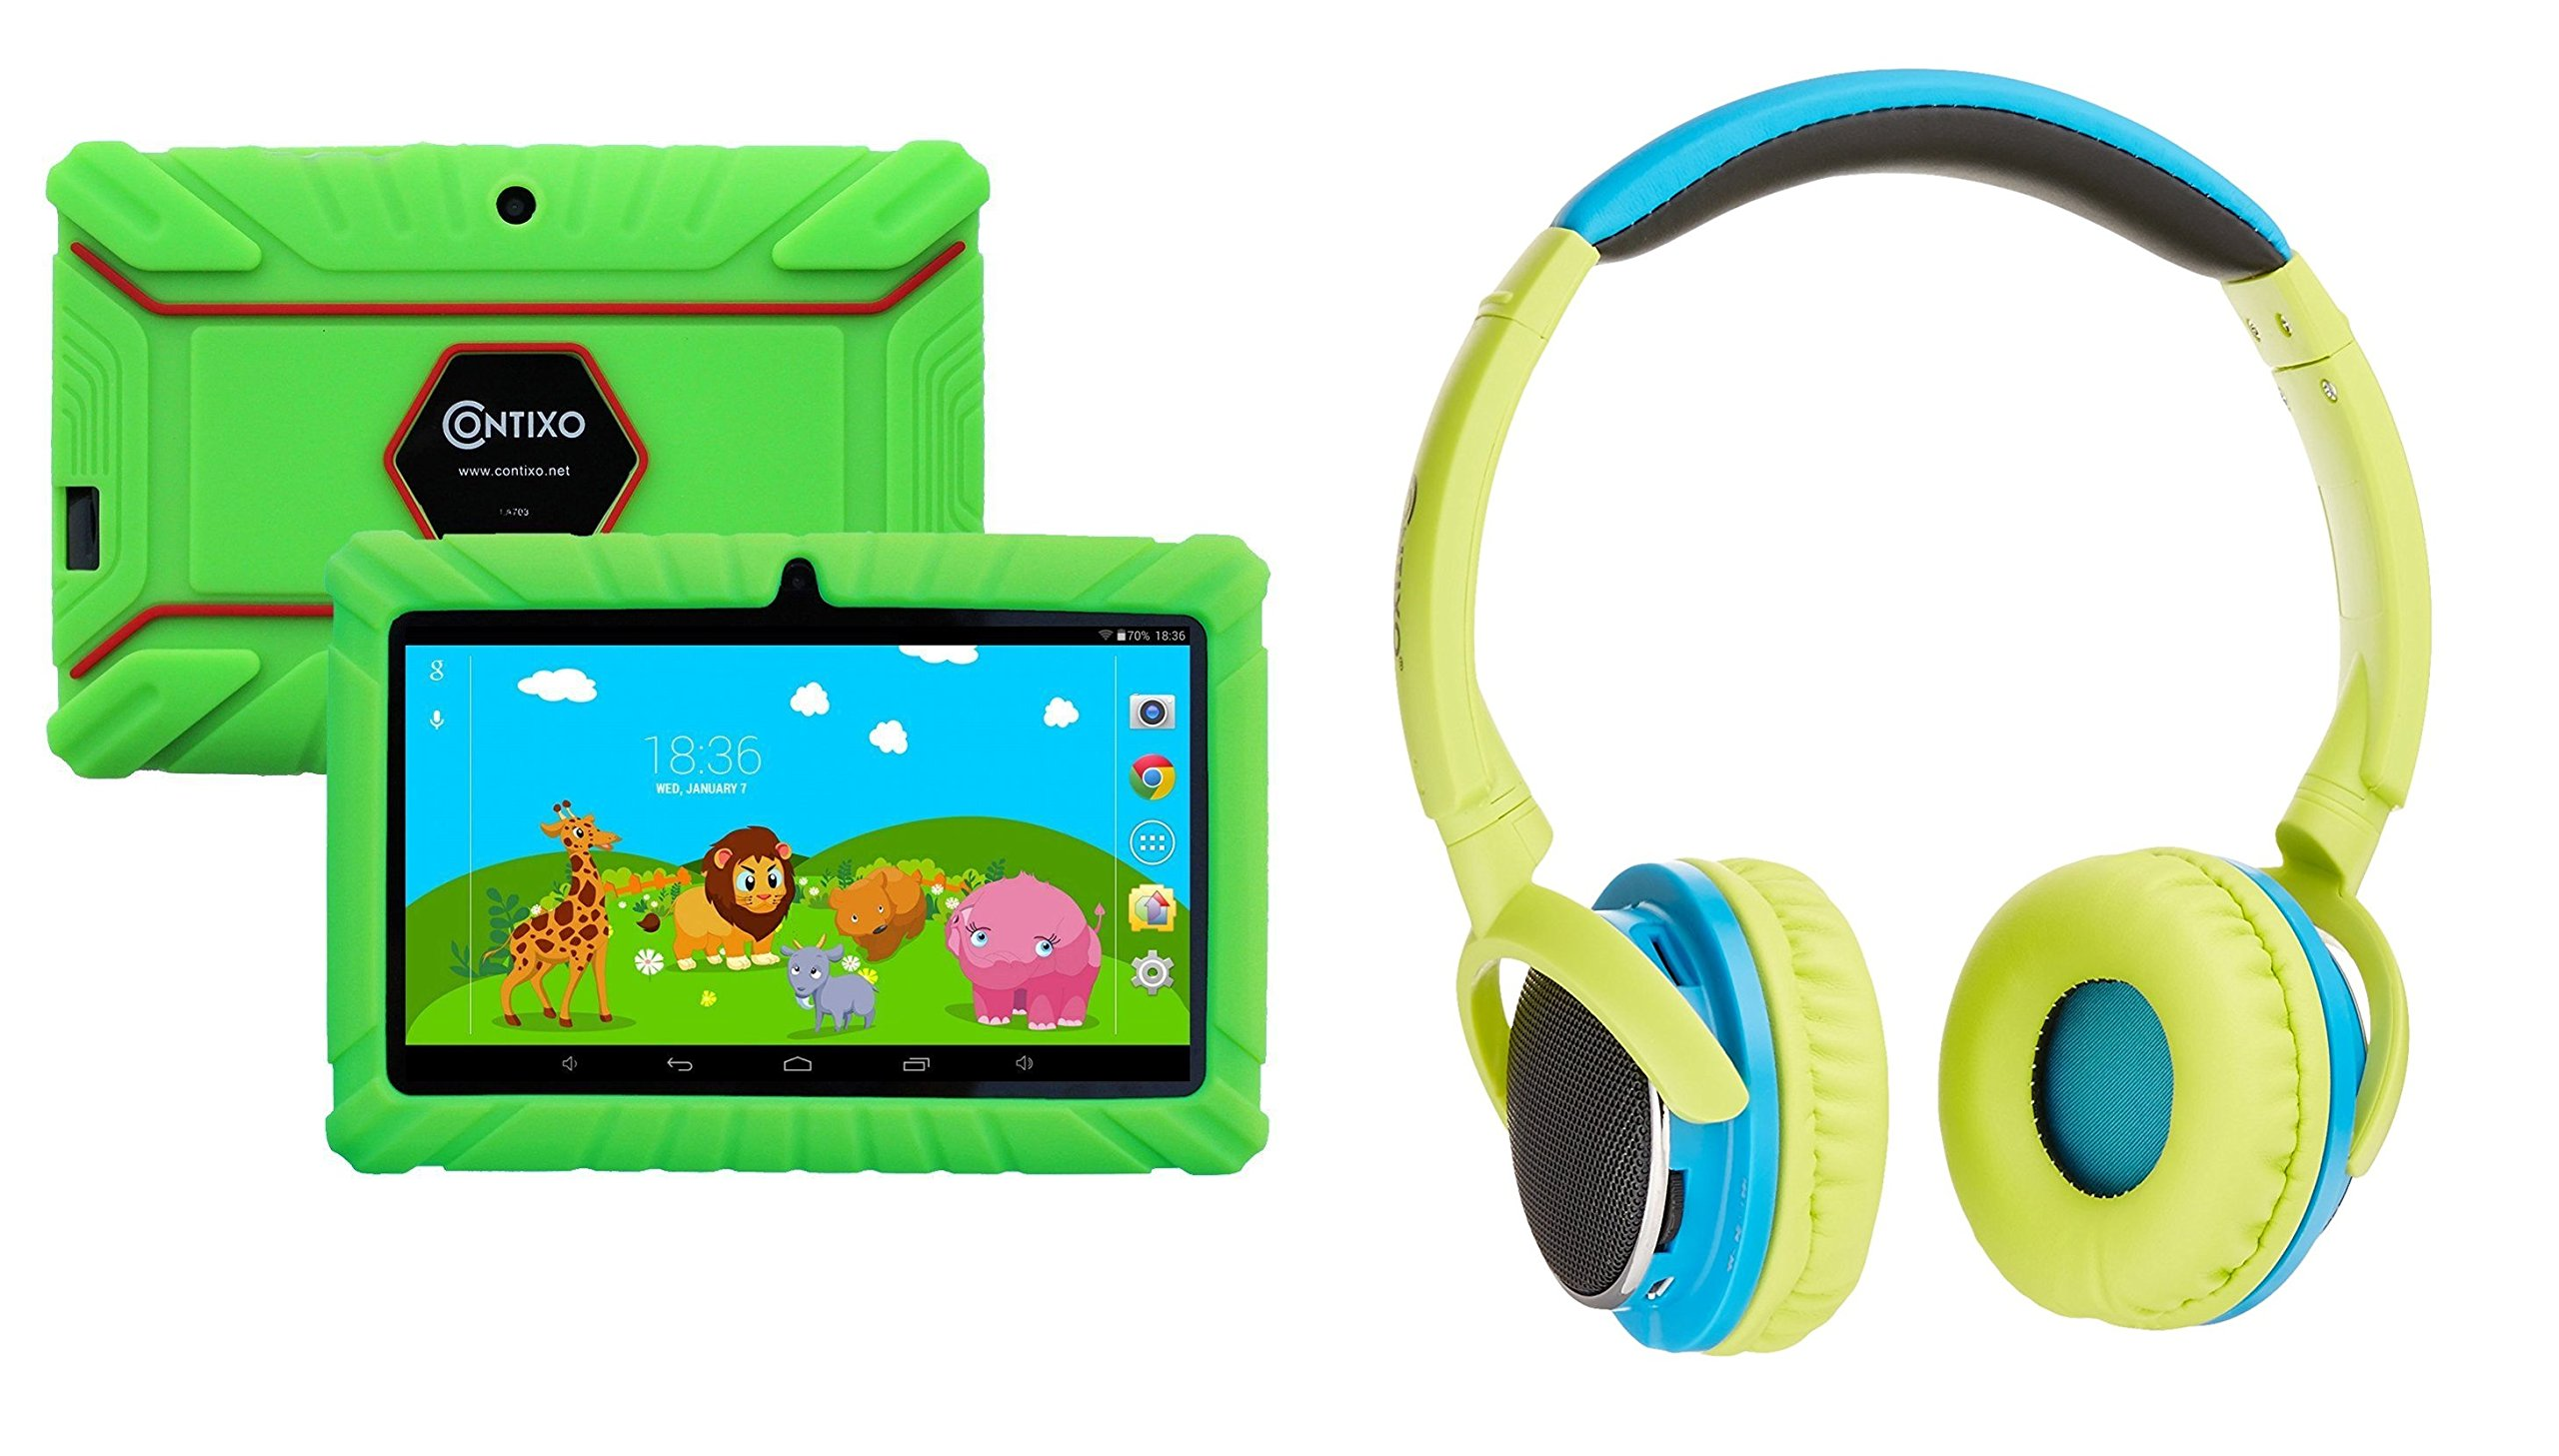 Contixo 7'' Educational Learning Kids Tablet 8gb & Kid Safe 85db Bluetooth Over The Ear Headphones Bundle (Green) - Best Gift